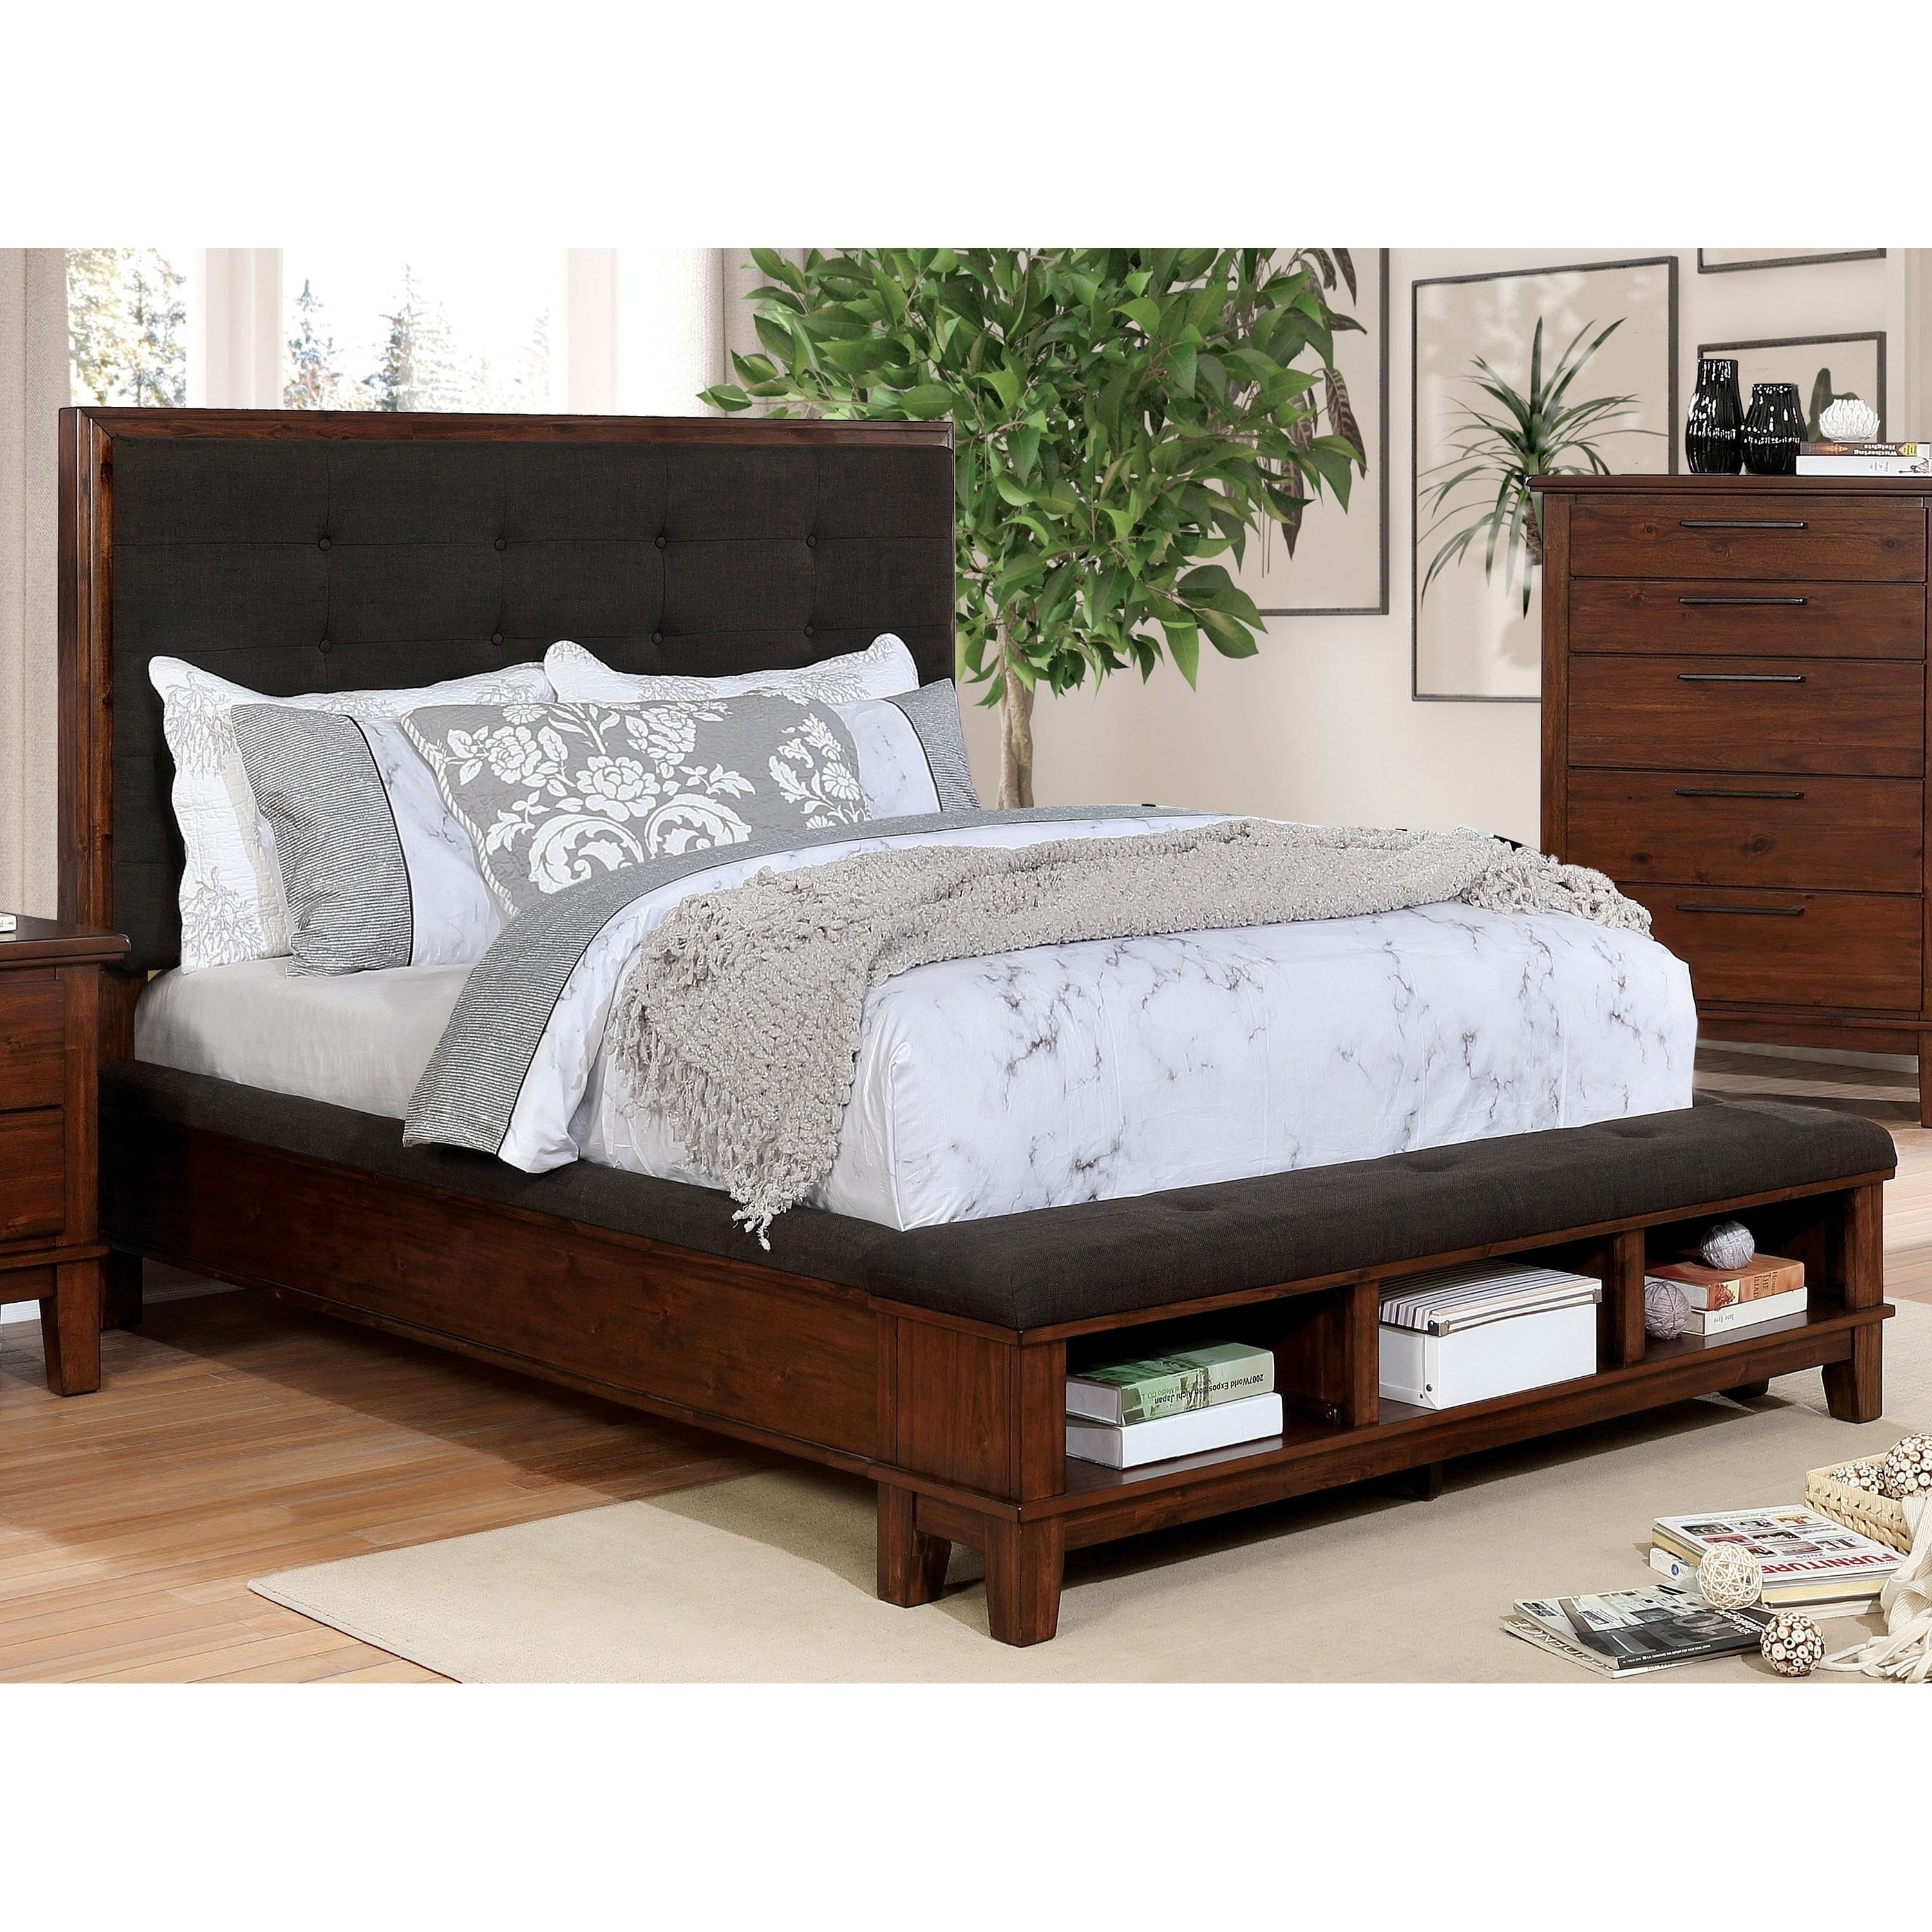 Caulfield Transitional Brown Cherry Storage Bed By Foa